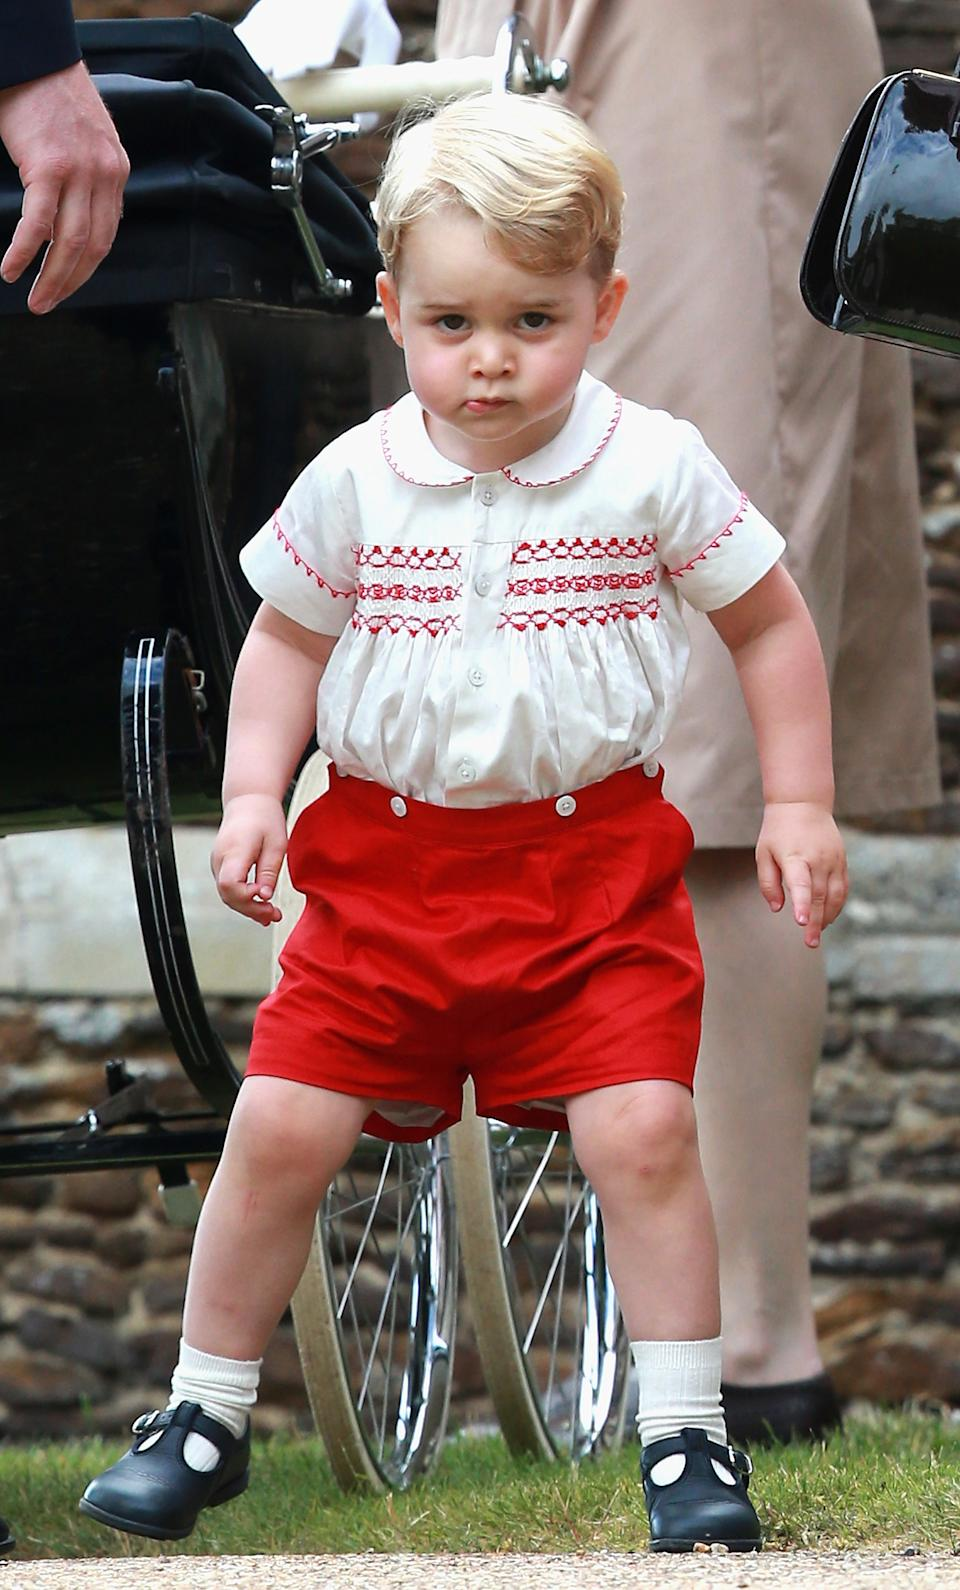 Prince George of Cambridge leaves his sister Charlotte's christening at St. Mary Magdalene Church in Sandringham, England, on July 5, 2015. Britain's baby Princess Charlotte was christened on Sunday in her second public outing since her birth nine weeks ago to proud parents Prince William and his wife Kate. The low-key ceremony took place in a church on the country estate of great grandmother Queen Elizabeth II. AFP PHOTO / POOL / CHRIS JACKSON (Photo by Chris Jackson / POOL / AFP) (Photo by CHRIS JACKSON/POOL/AFP via Getty Images)